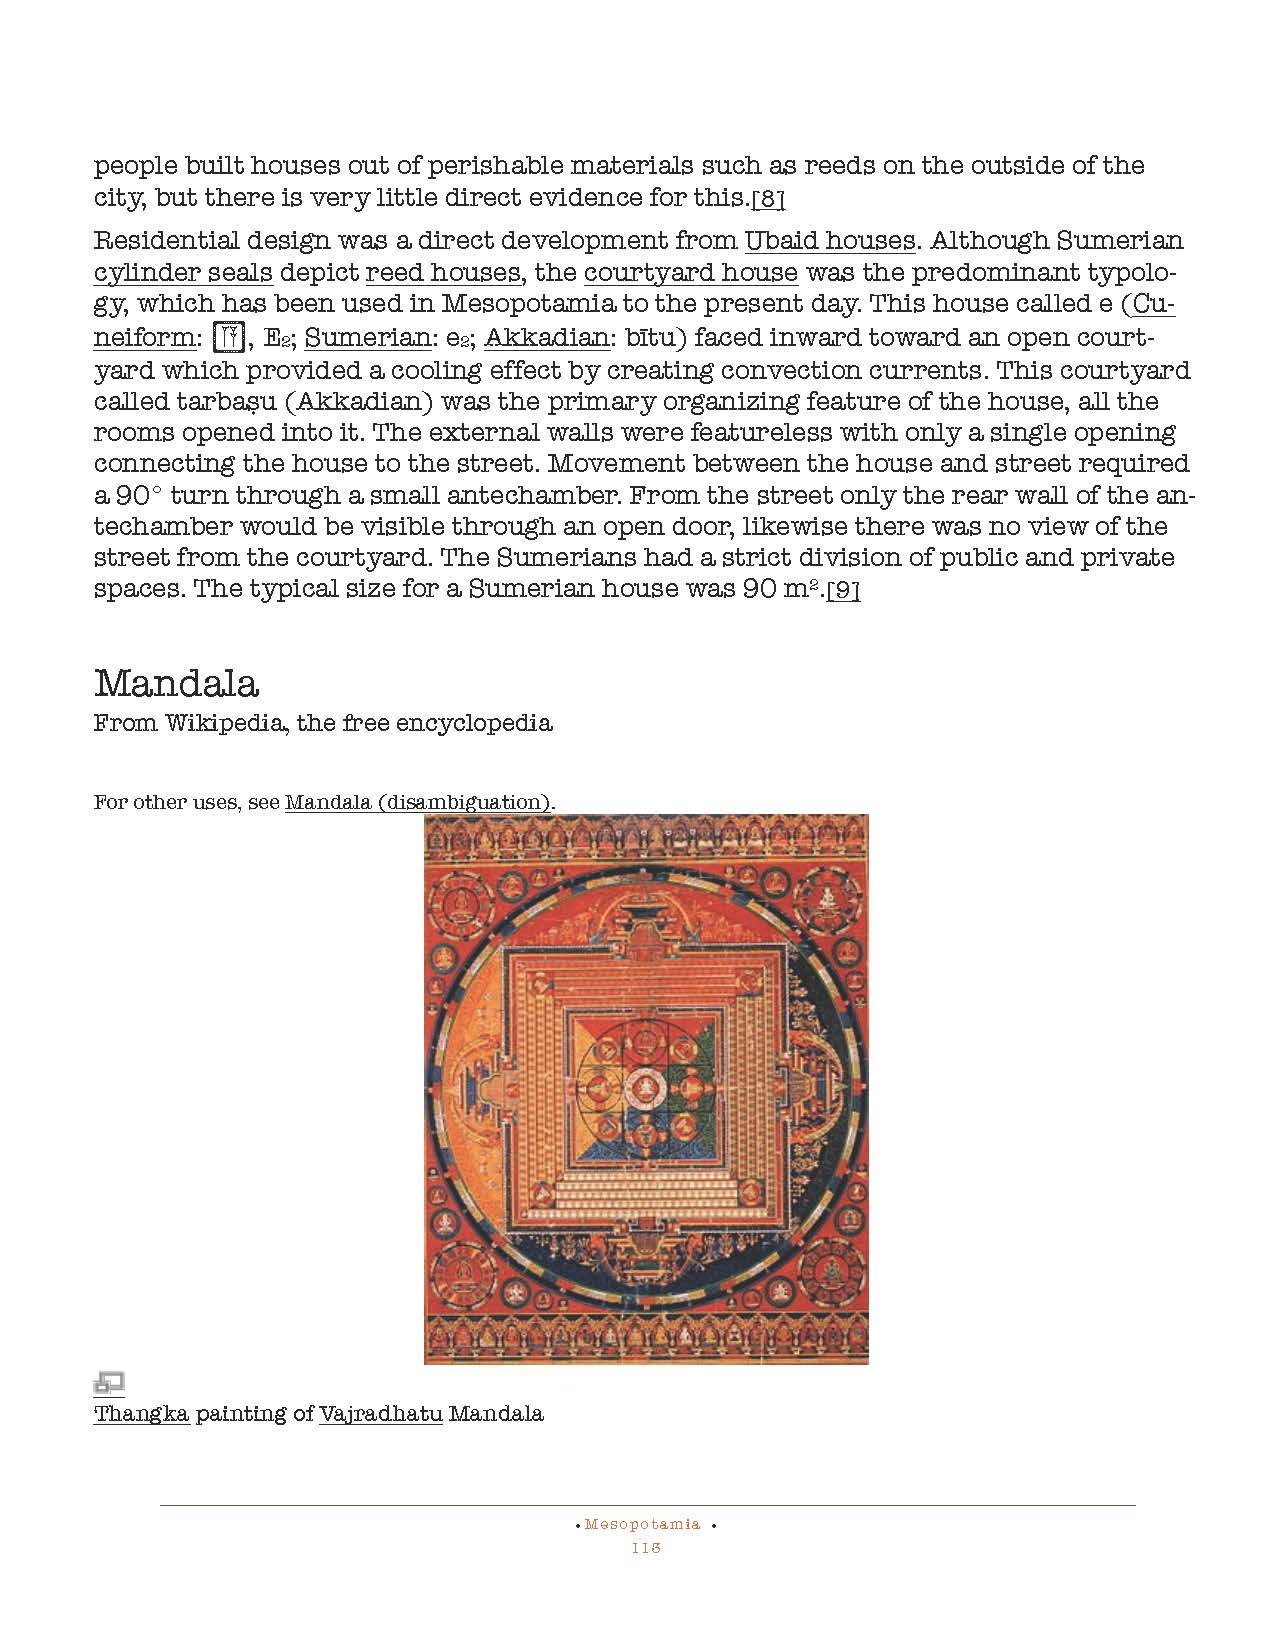 HOCE- Fertile Crescent Notes_Page_113.jpg